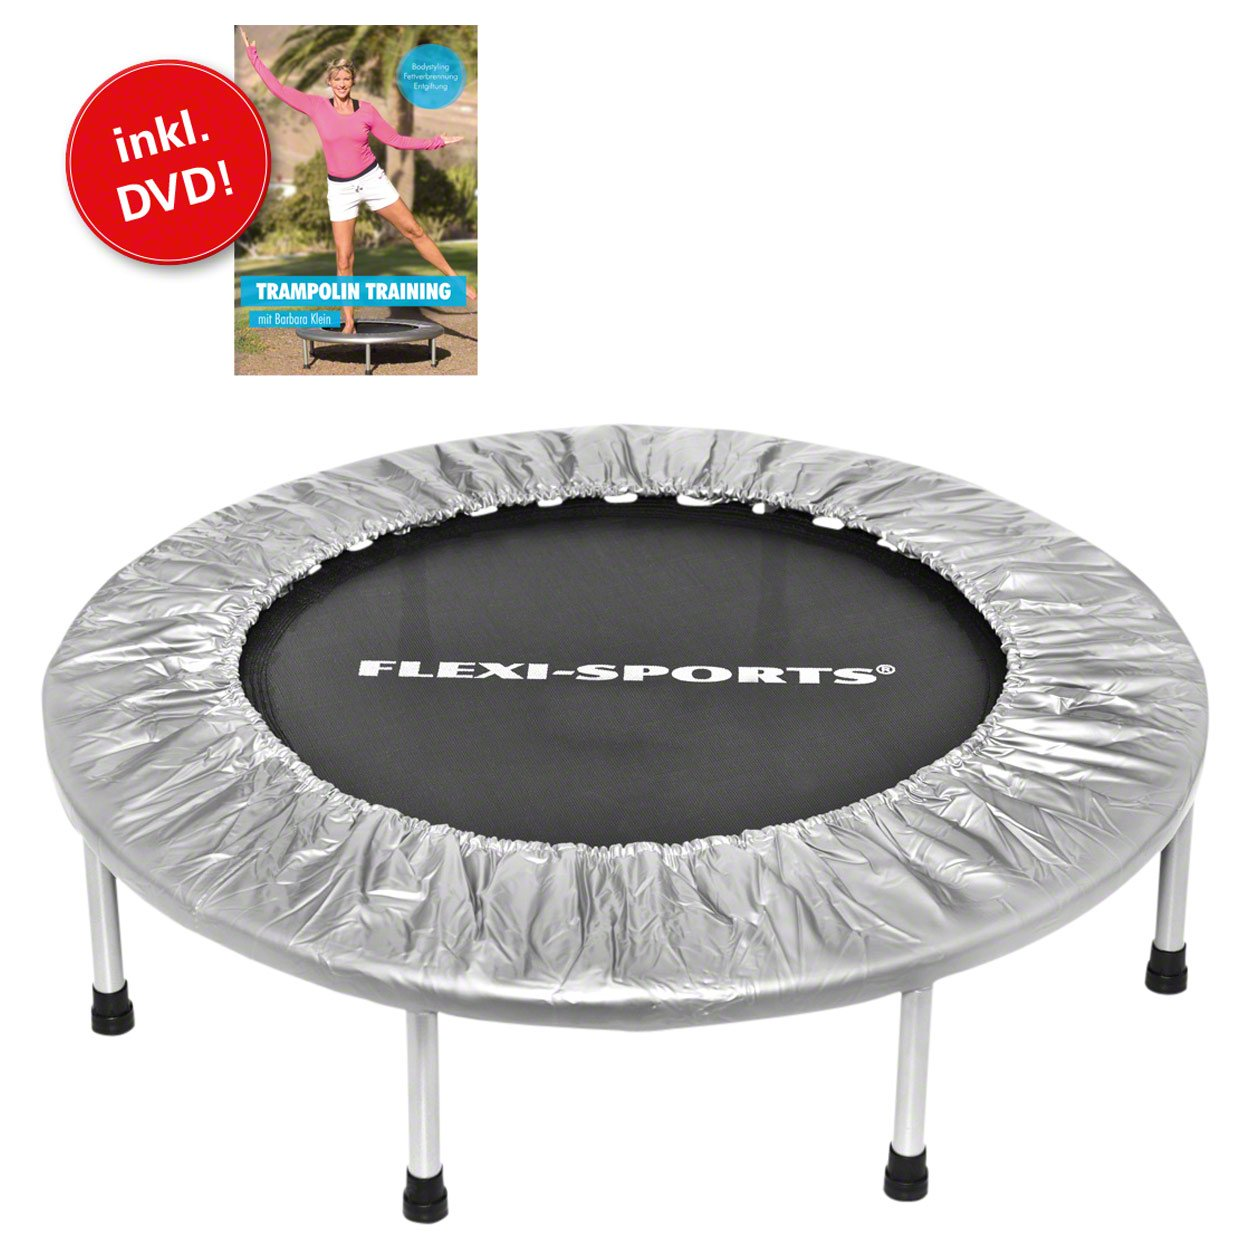 FLEXI-SPORTS Trampolin zzgl. DVD 'Trampolin Training'